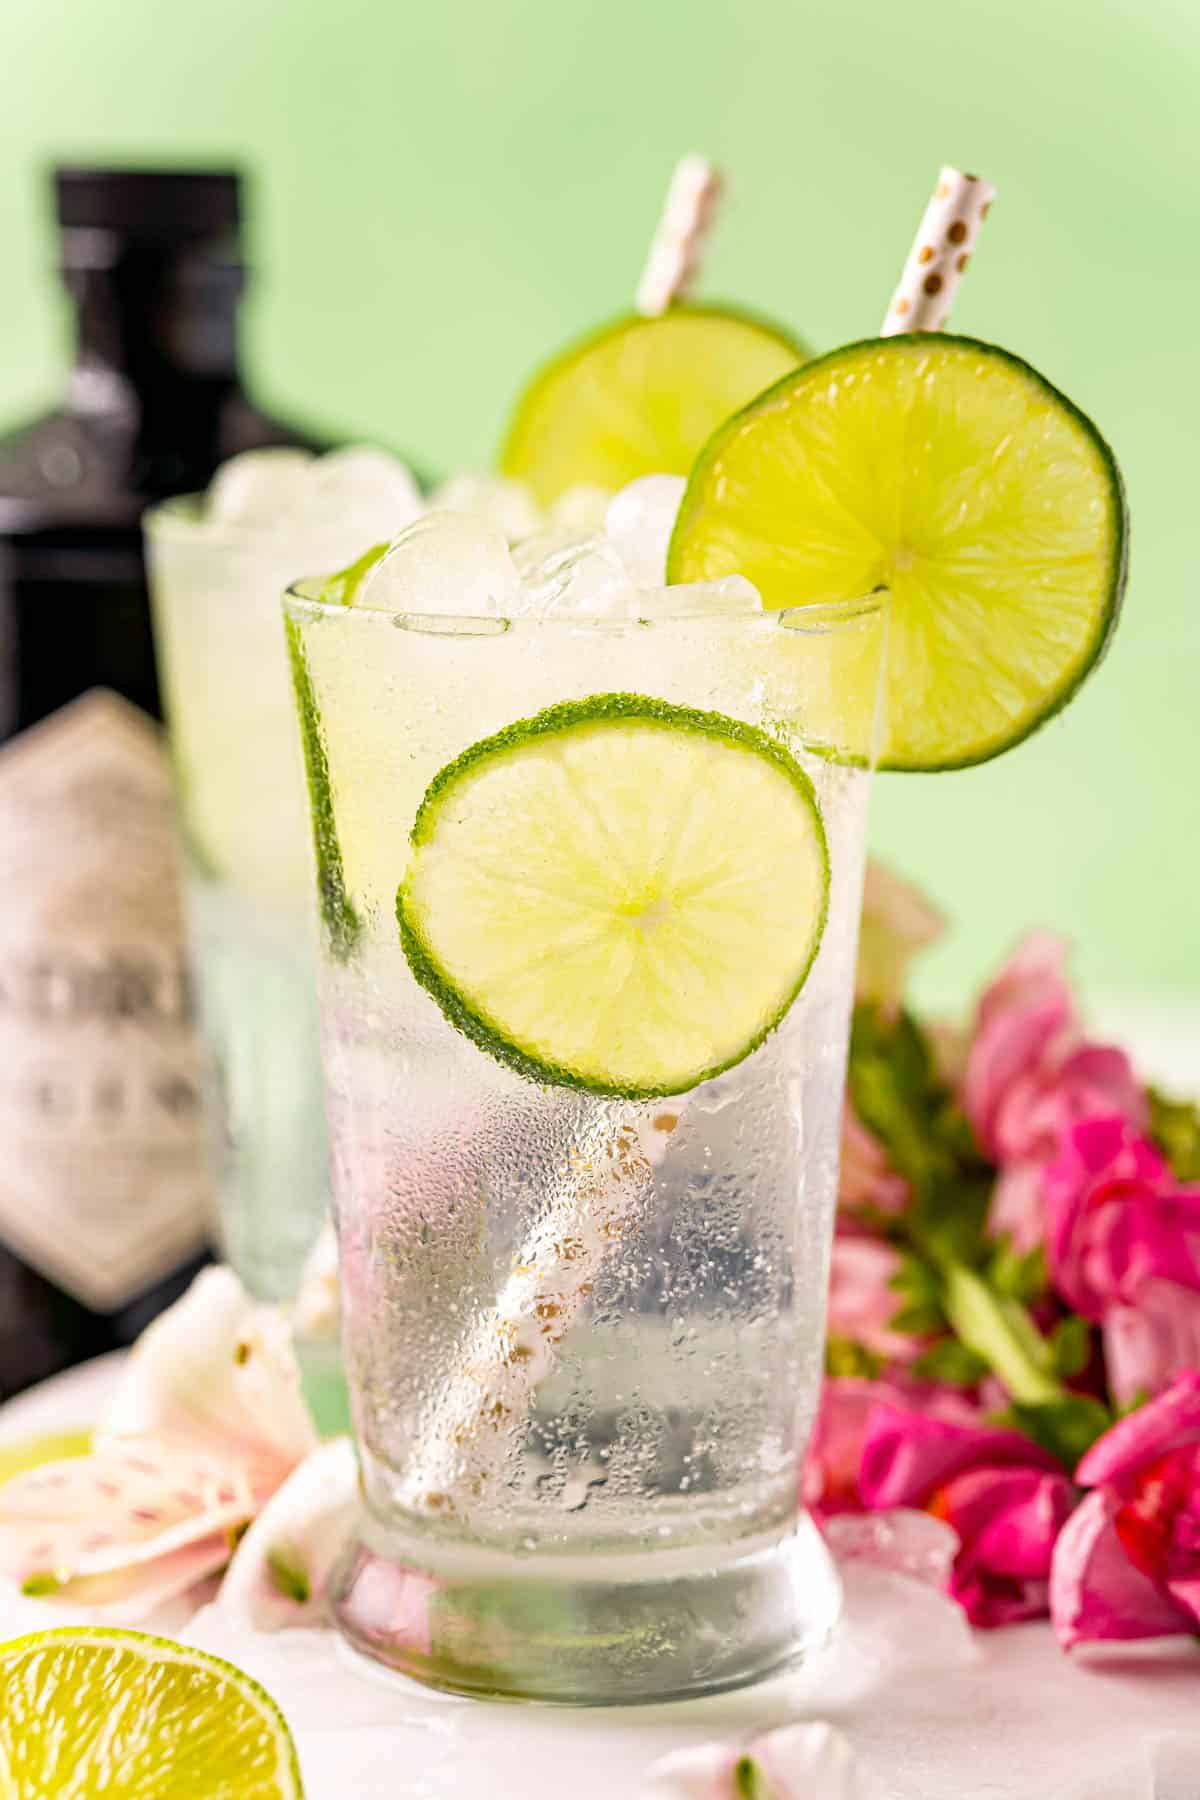 Gin and Tonic in a clear glass with lime slices, another glass in the background, and a bottle of gin.